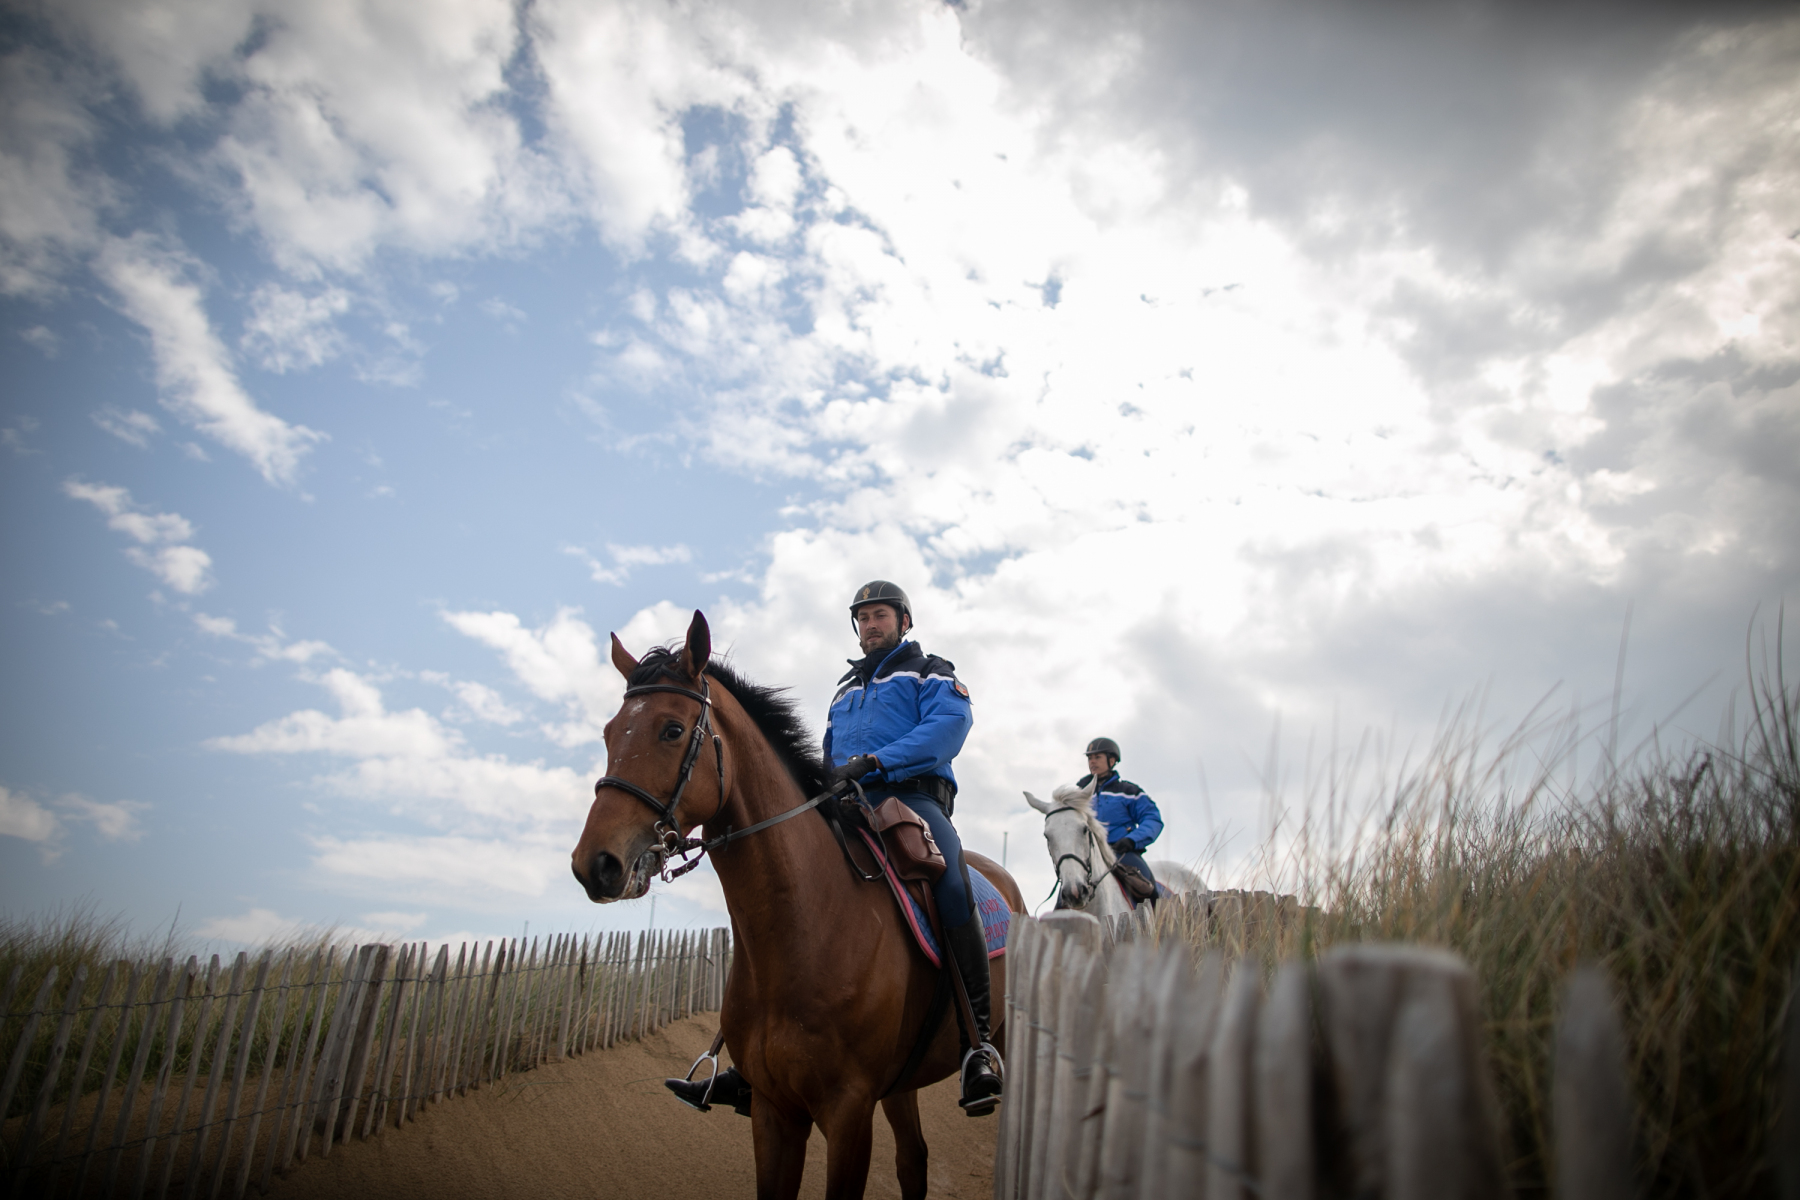 Garde républicaine mounted gendarmes arrives on the Courseulles-sur-Mer beach, northwestern France, on April 17, 2020, following a strict lockdown across France to stop the spread of COVID-19, caused by the novel coronavirus.67